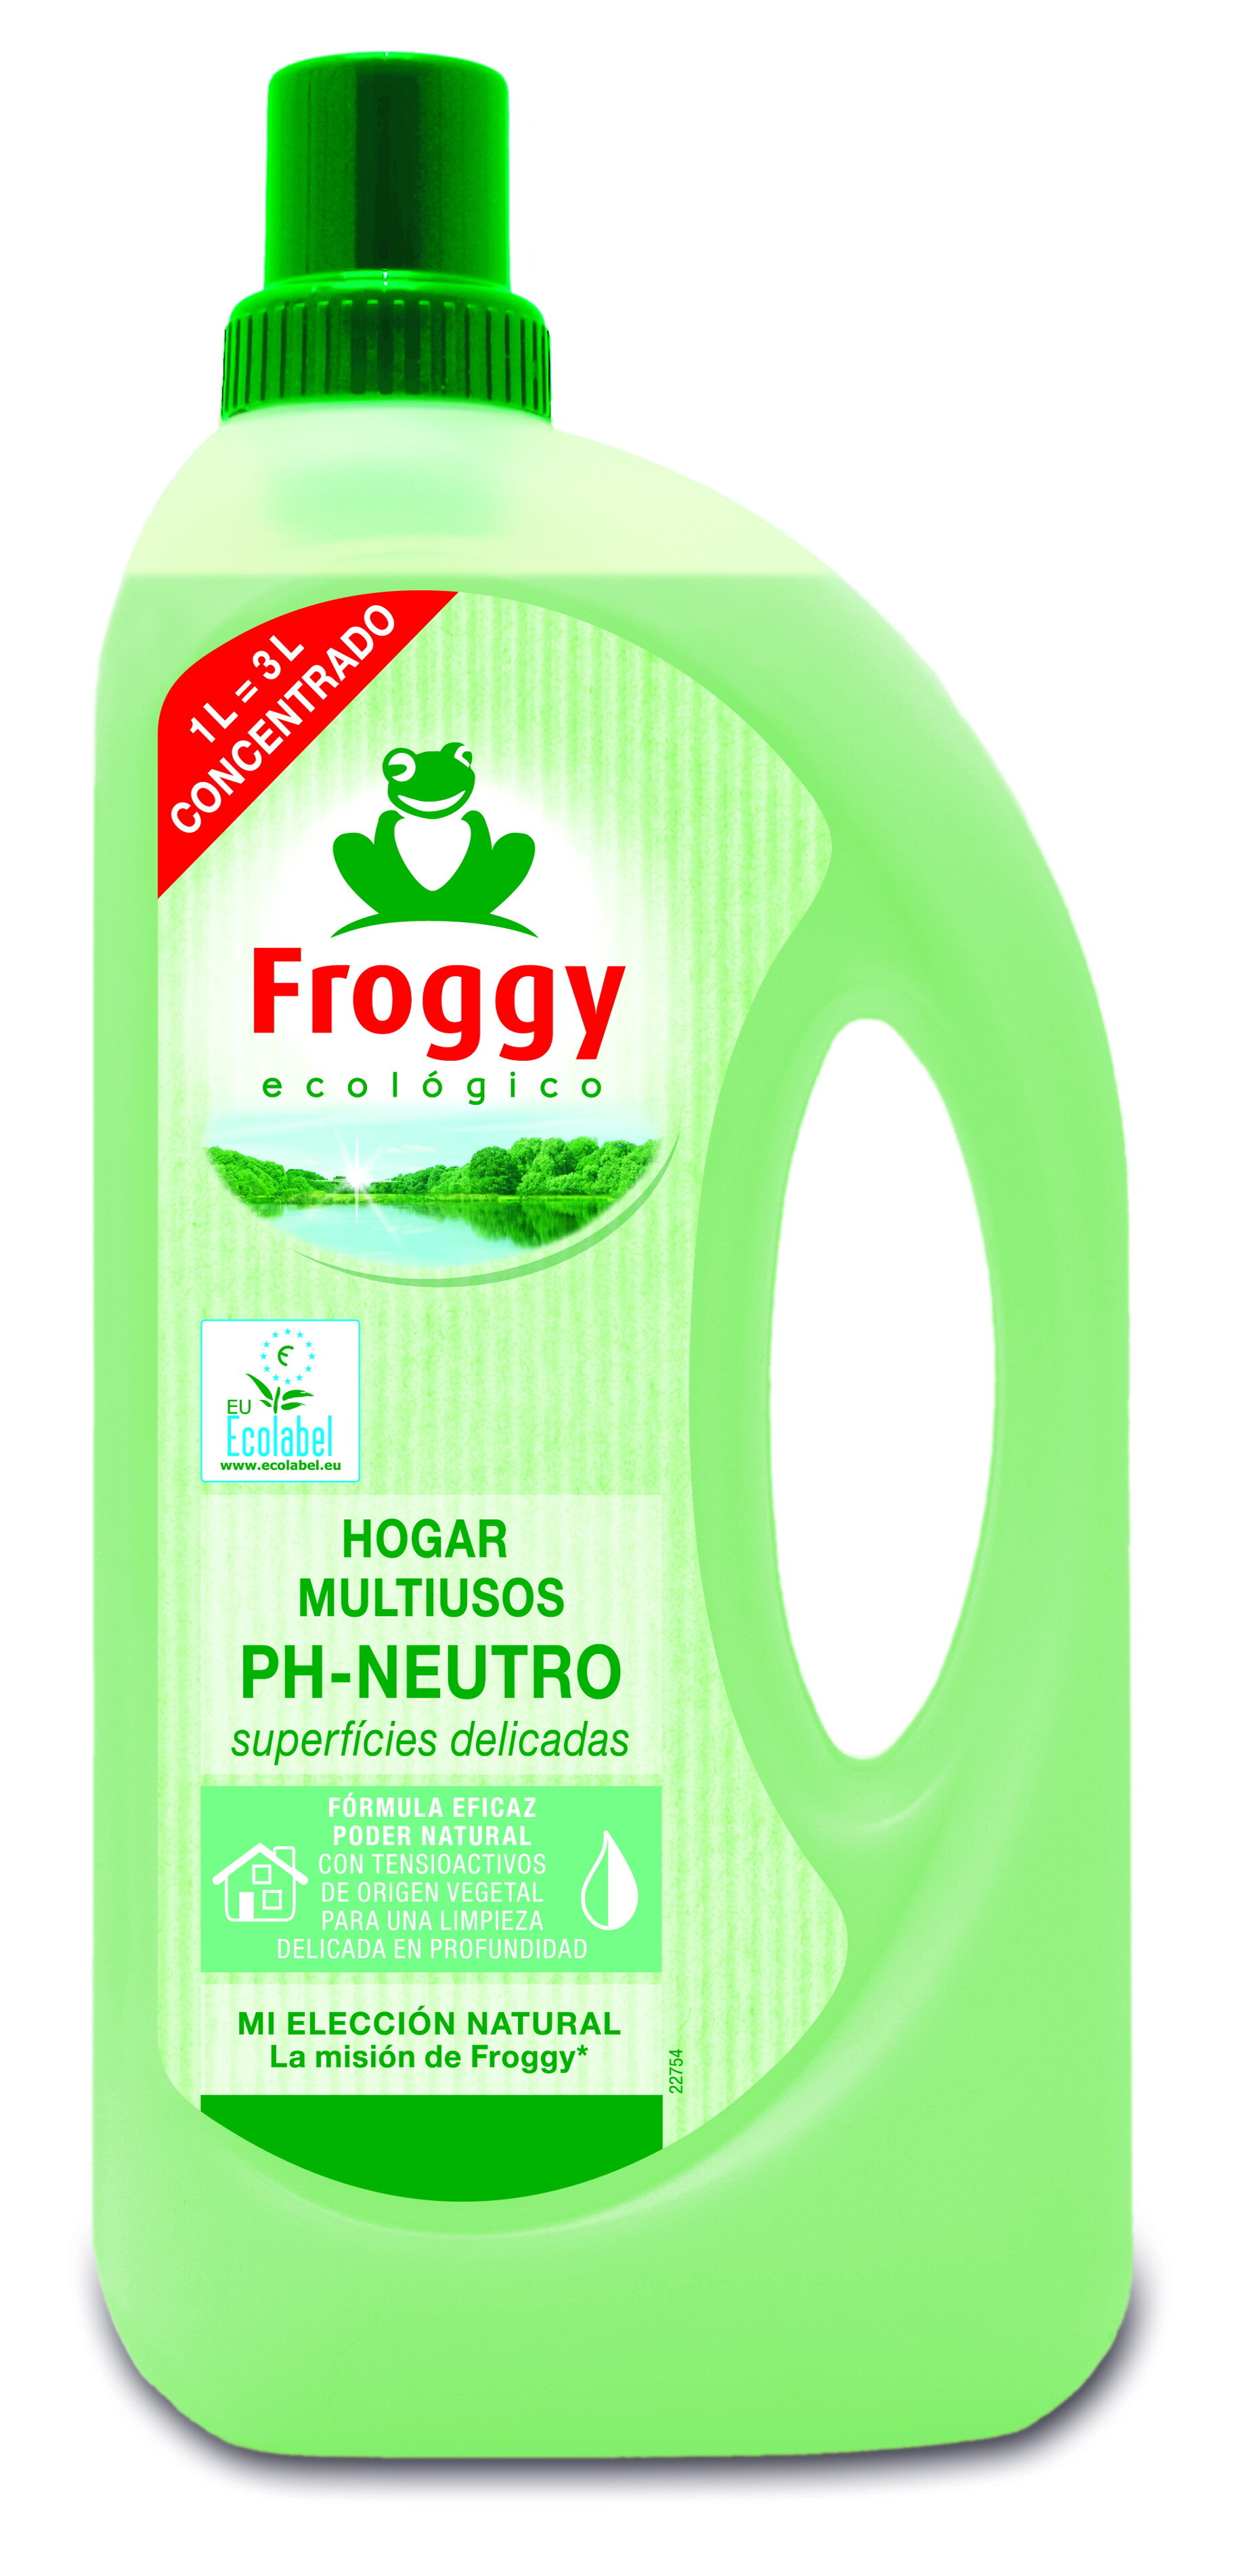 MULTIUSOS PH NEUTRO ECOLOGICO FROGGY 1000ML en Biovegalia